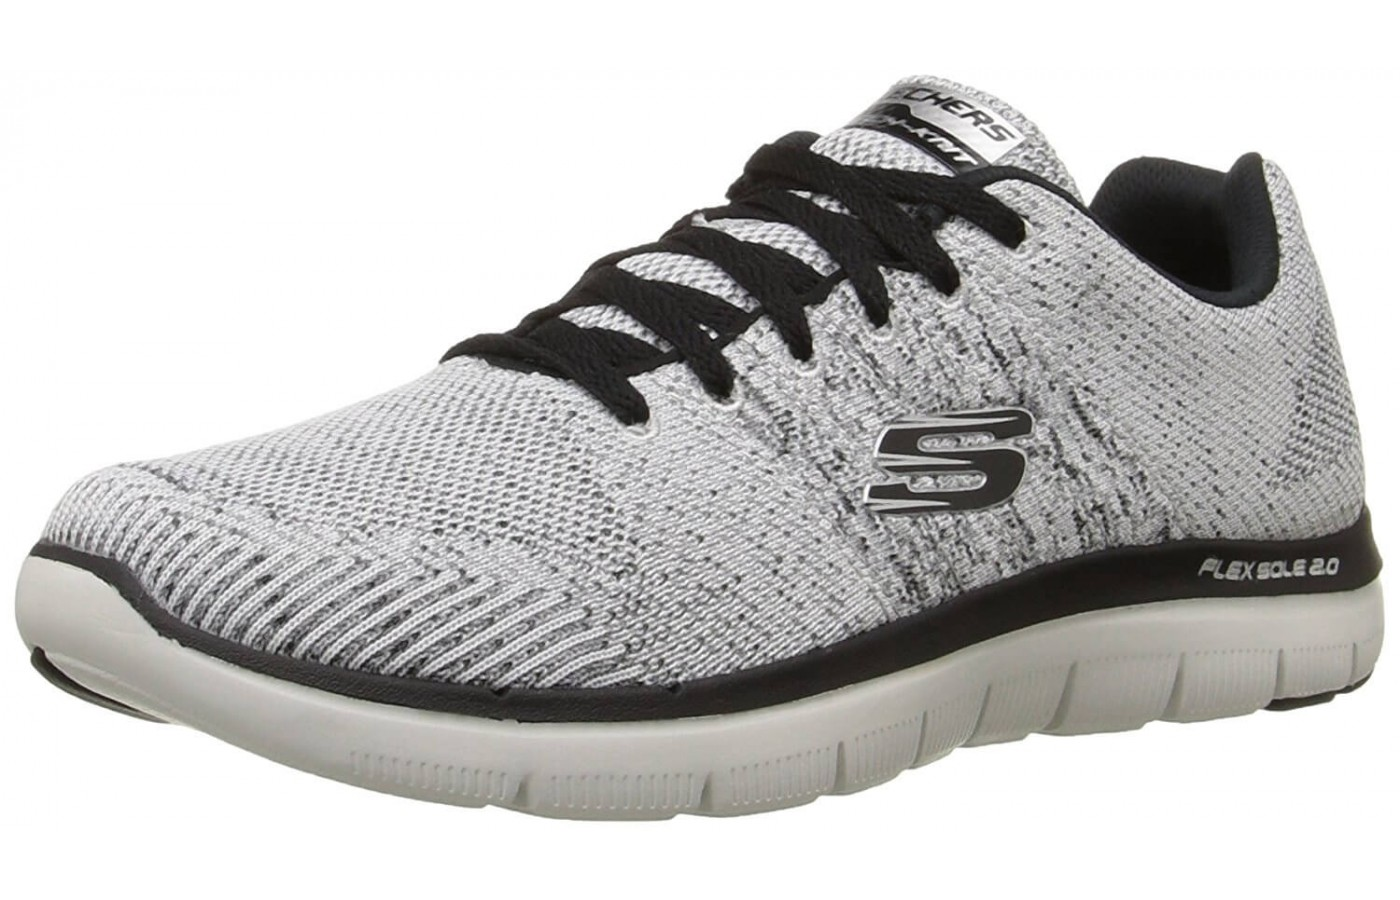 An angled view of the Skechers Flex Advantage 2.0.